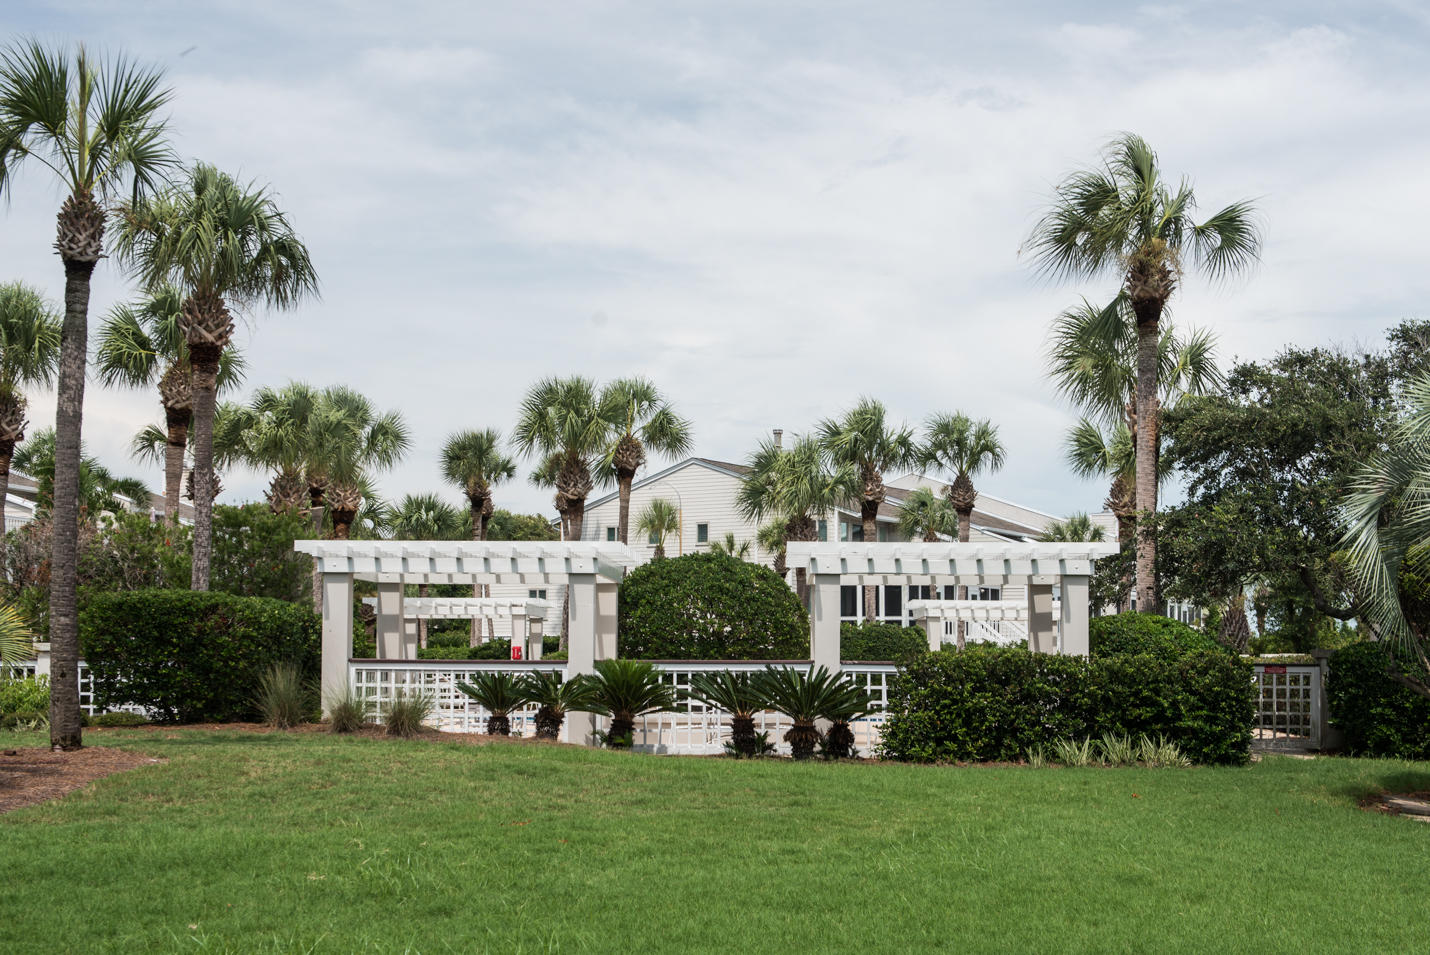 Beach Club Villas Homes For Sale - 66 Beach Club Villas, Isle of Palms, SC - 23